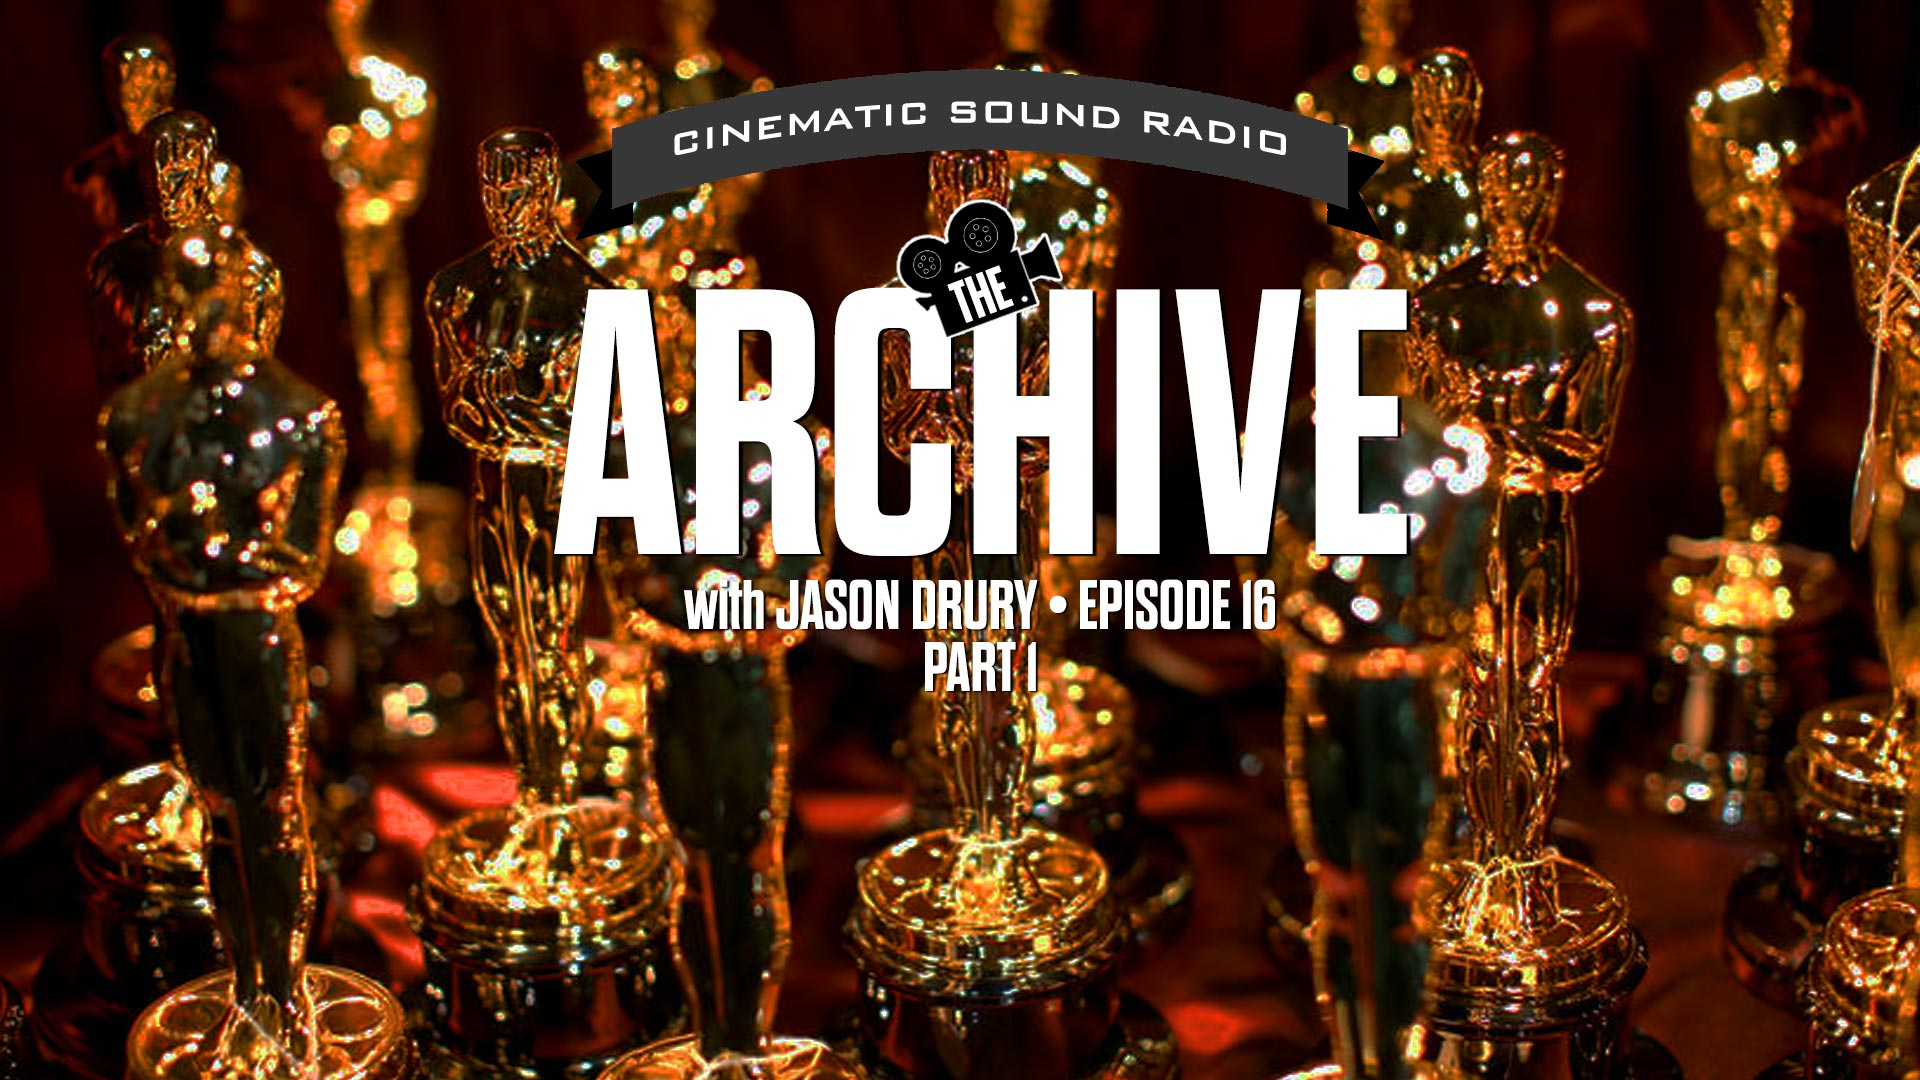 THE ARCHIVE WITH JASON DRURY: EPISODE SIXTEEN - OSCAR